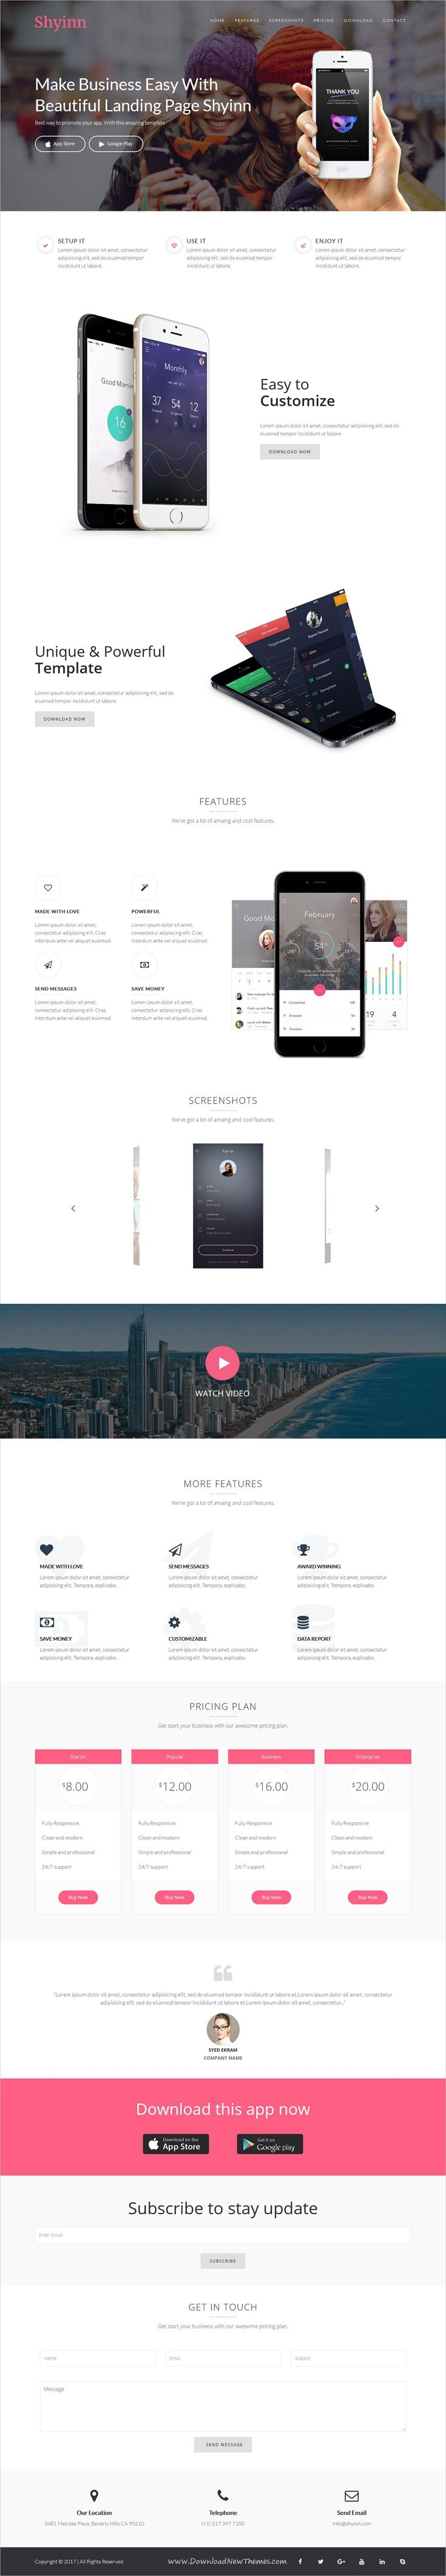 Pretty 1 Page Proposal Template Thick 1 Week Calendar Template Rectangular 1 Year Experience Resume In Java J2ee 10 Envelope Template Young 2 Column Blogger Template White2 Page Resume 2016 Best Responsive Joomla Theme Collections: A Collection Of Design ..